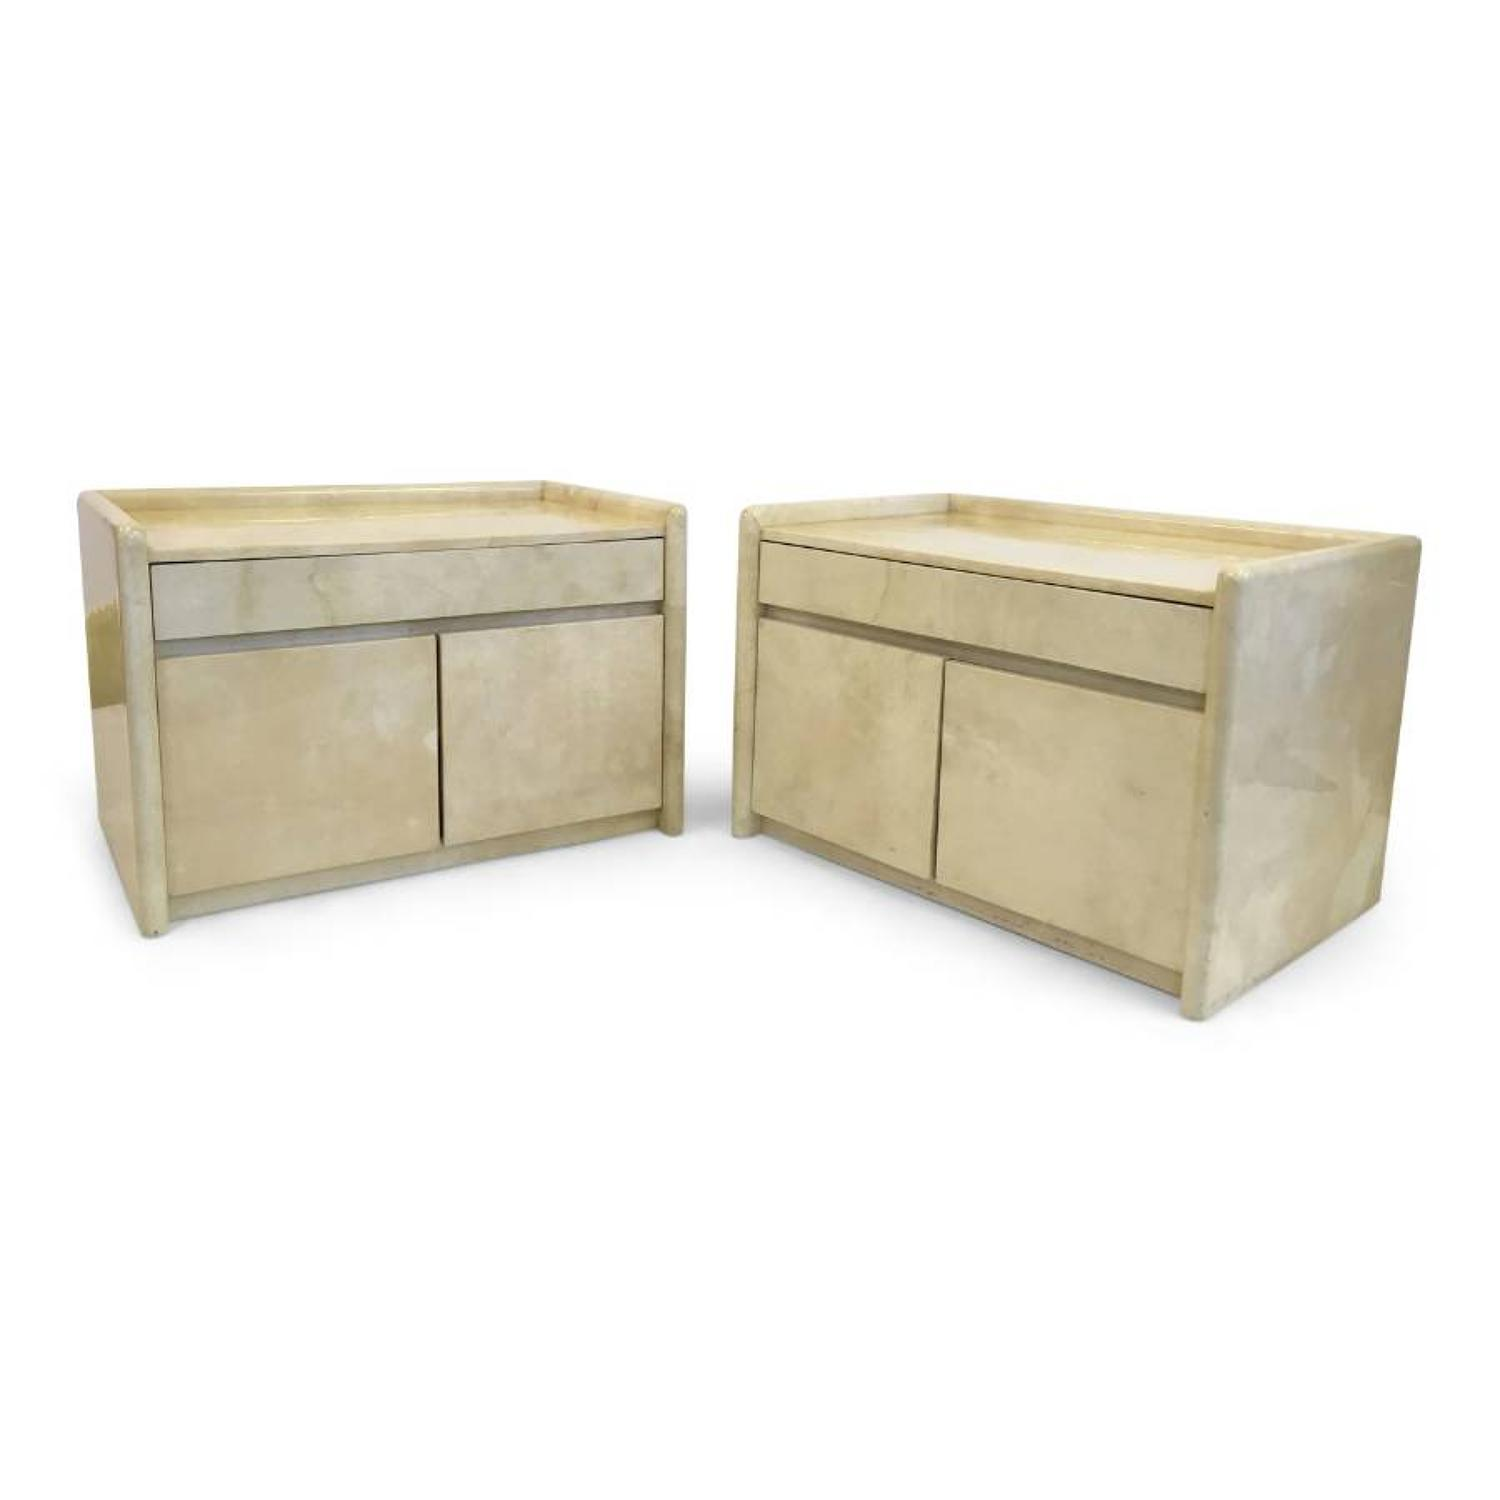 A pair of large lacquered parchment bedside tables